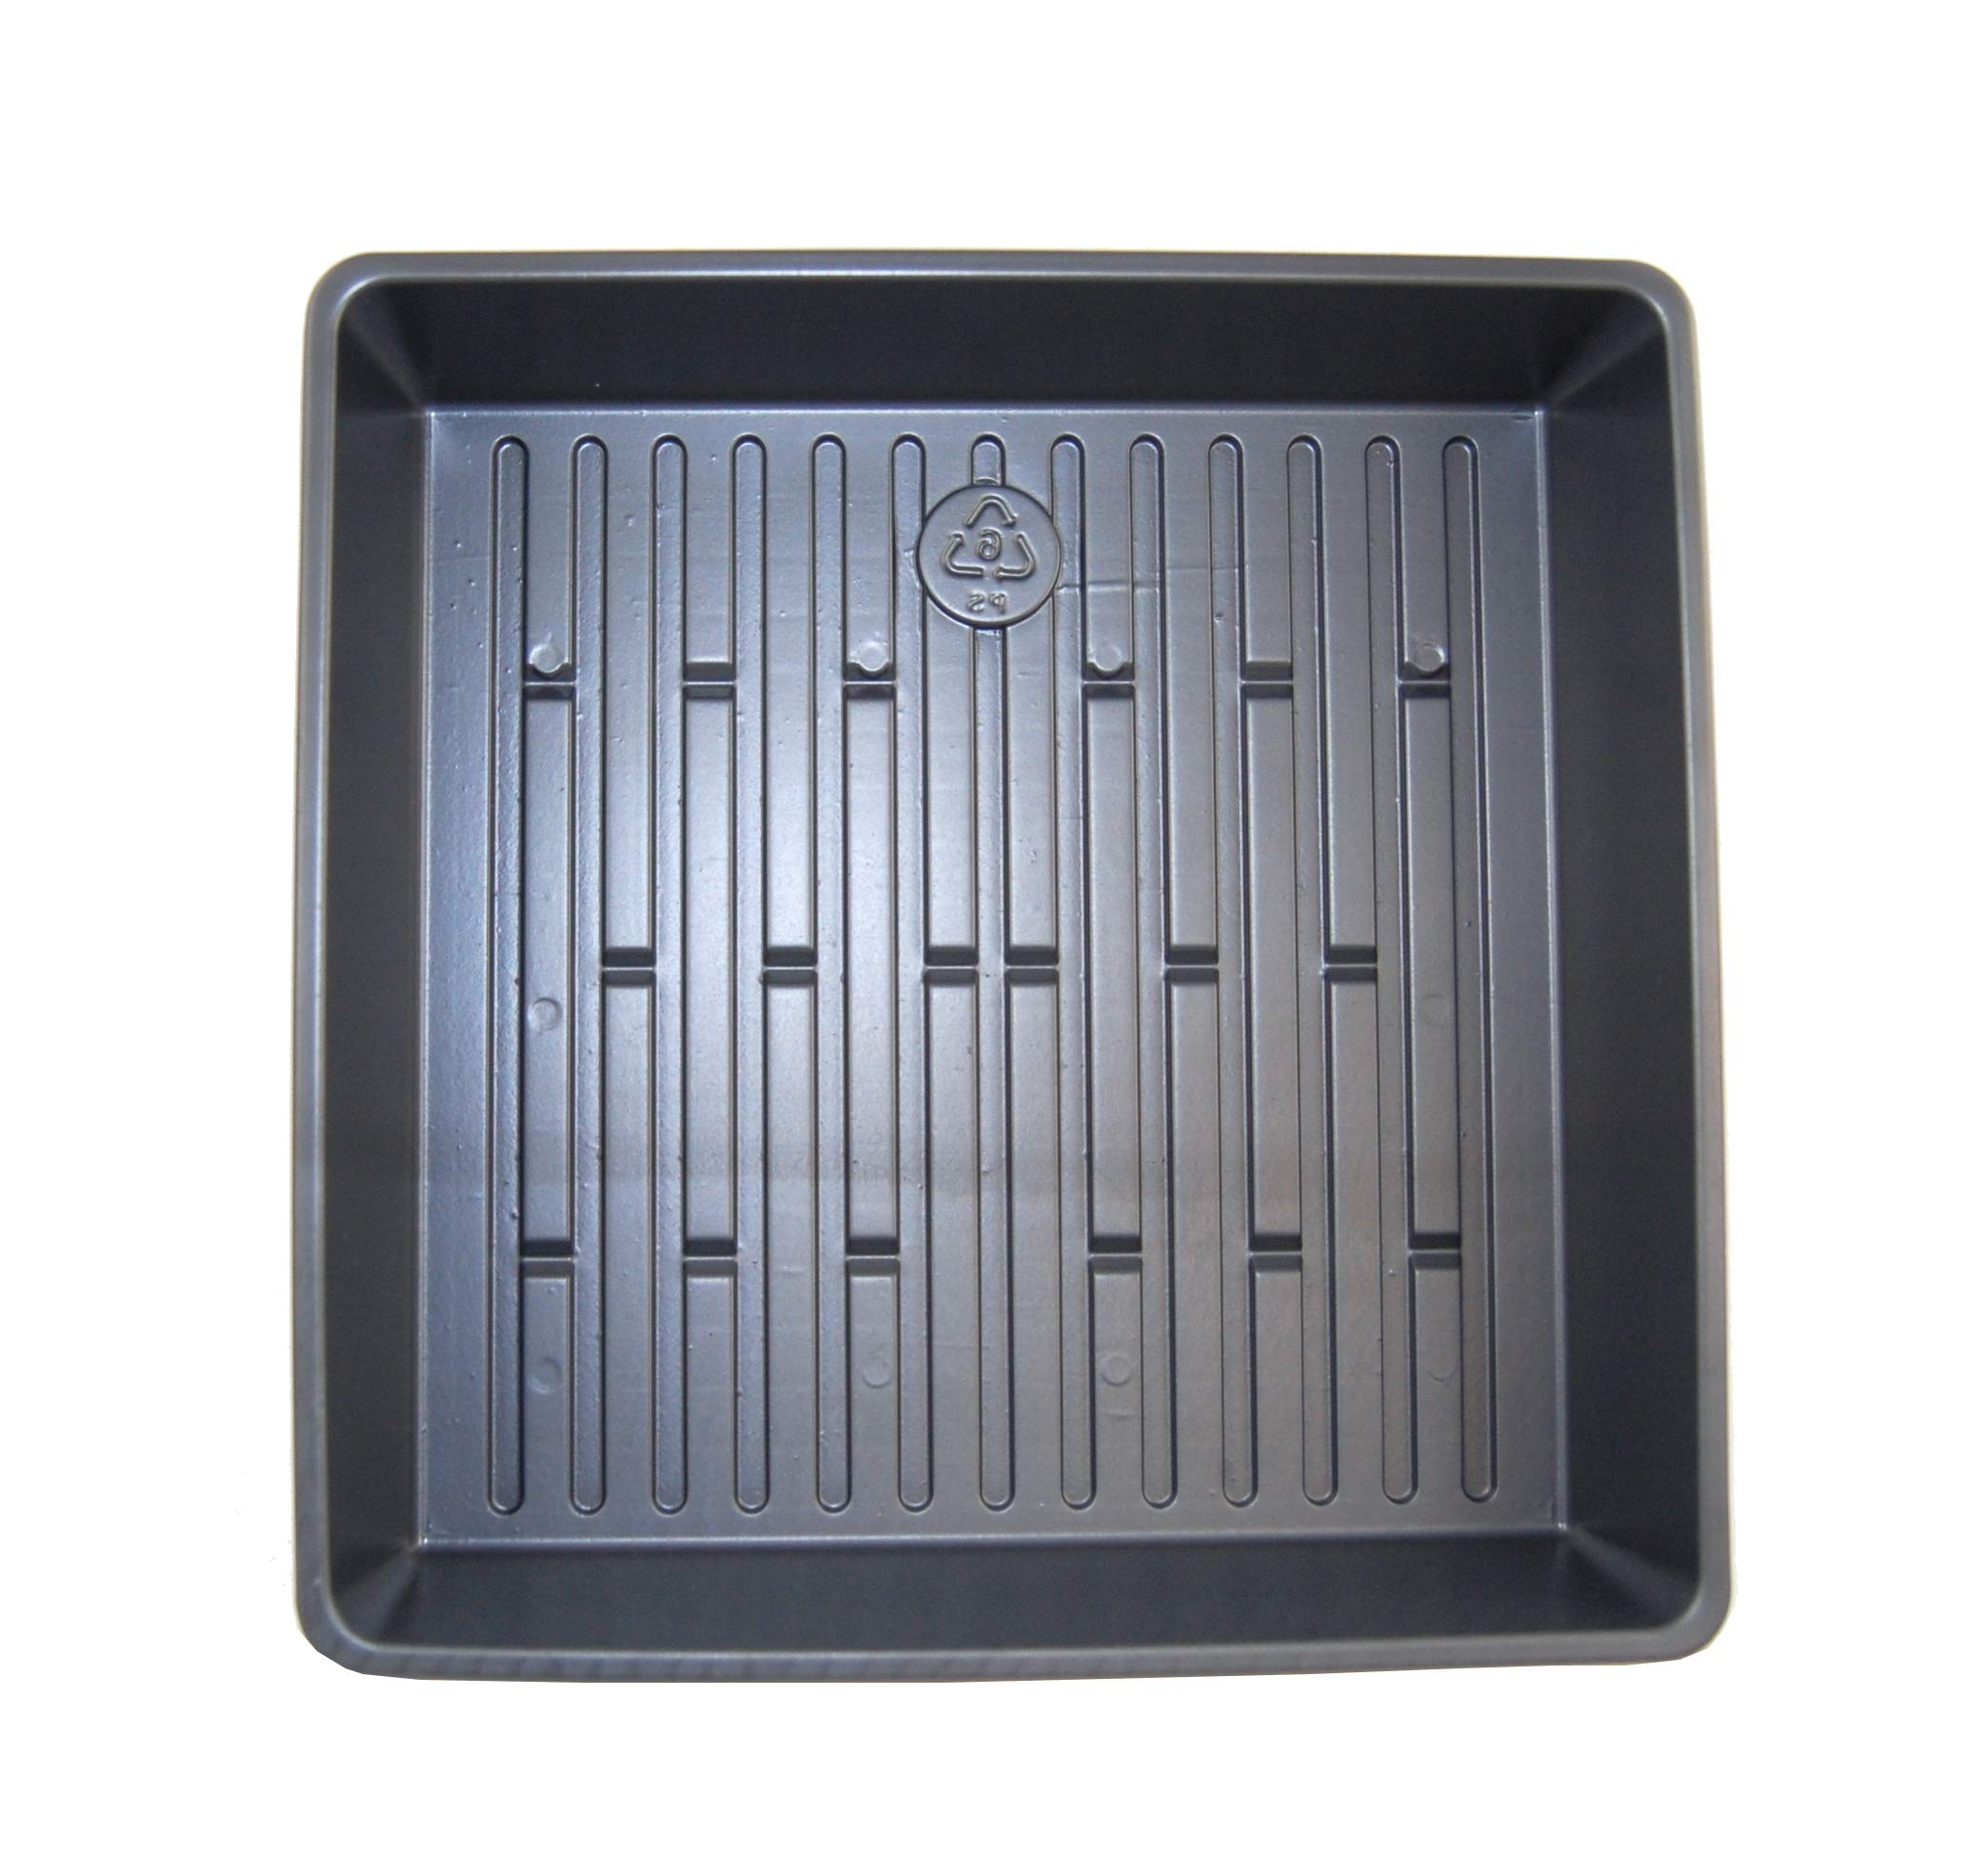 Wheatgrass Growing Tray - 10 1/2'' x10 1/12''x 2 1/4'' Wheatgrass Seed Trays - No Holes - 10 pack by Grower's Solution